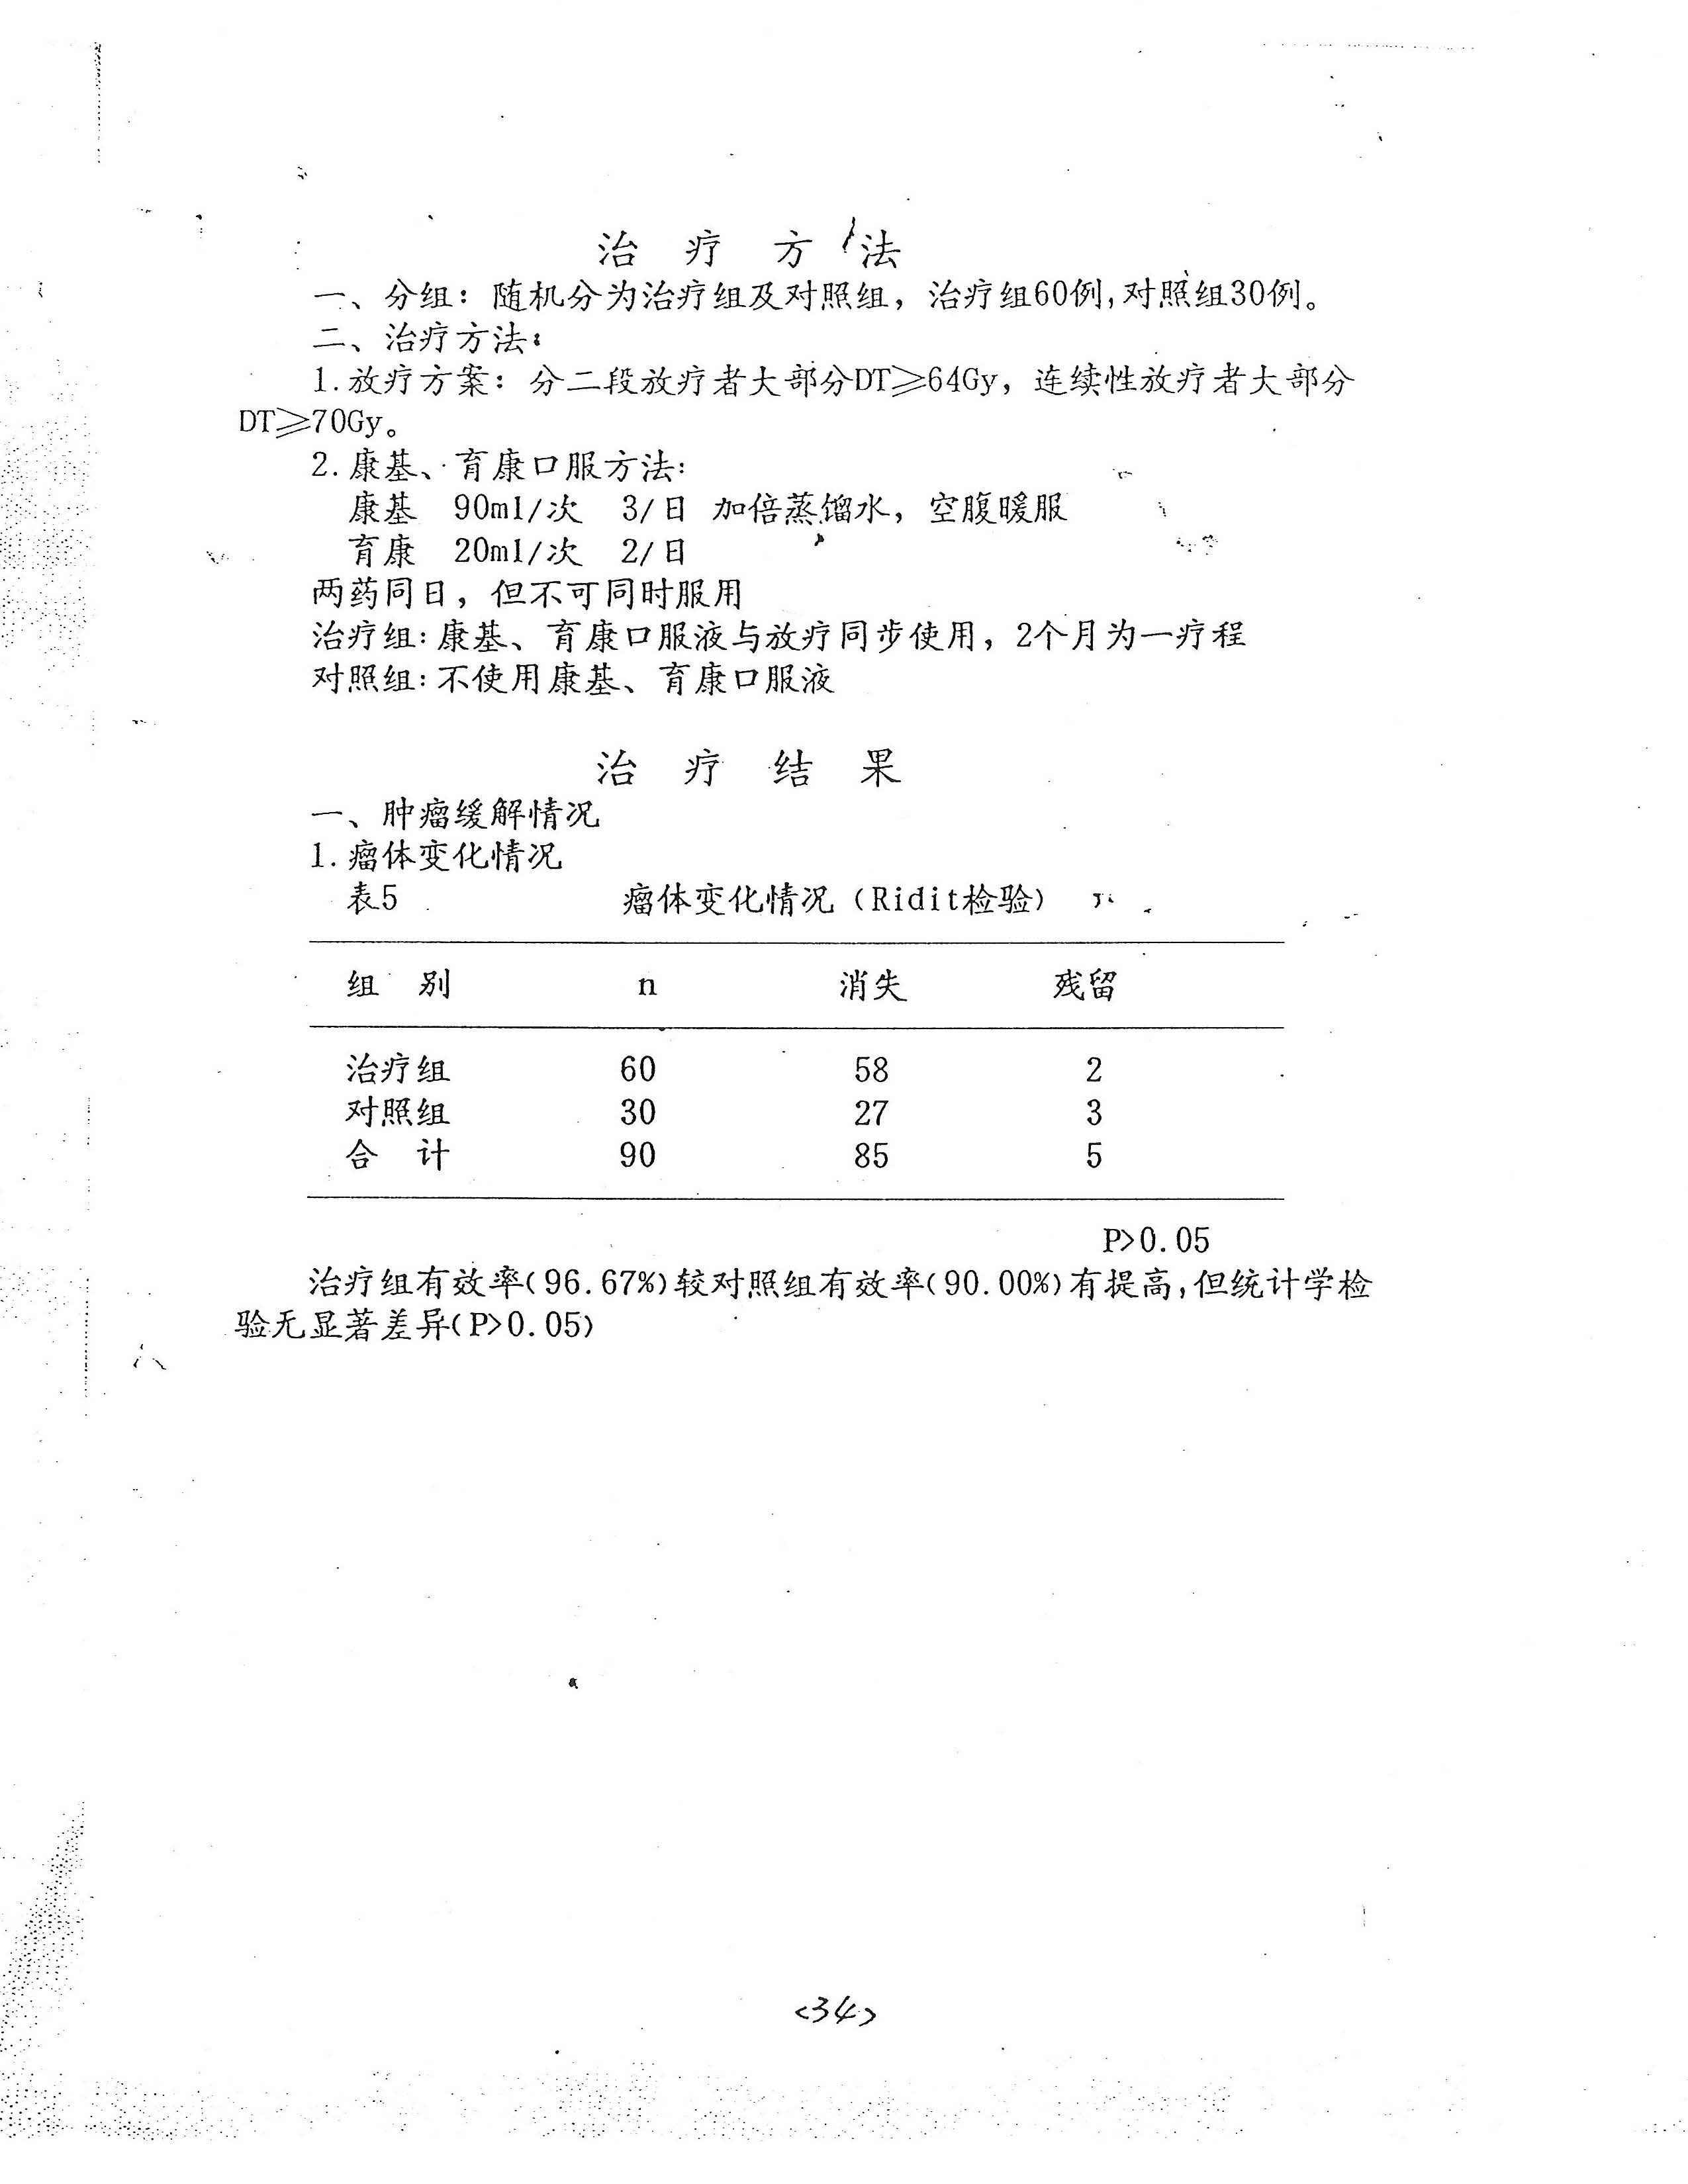 clinical_Page_36